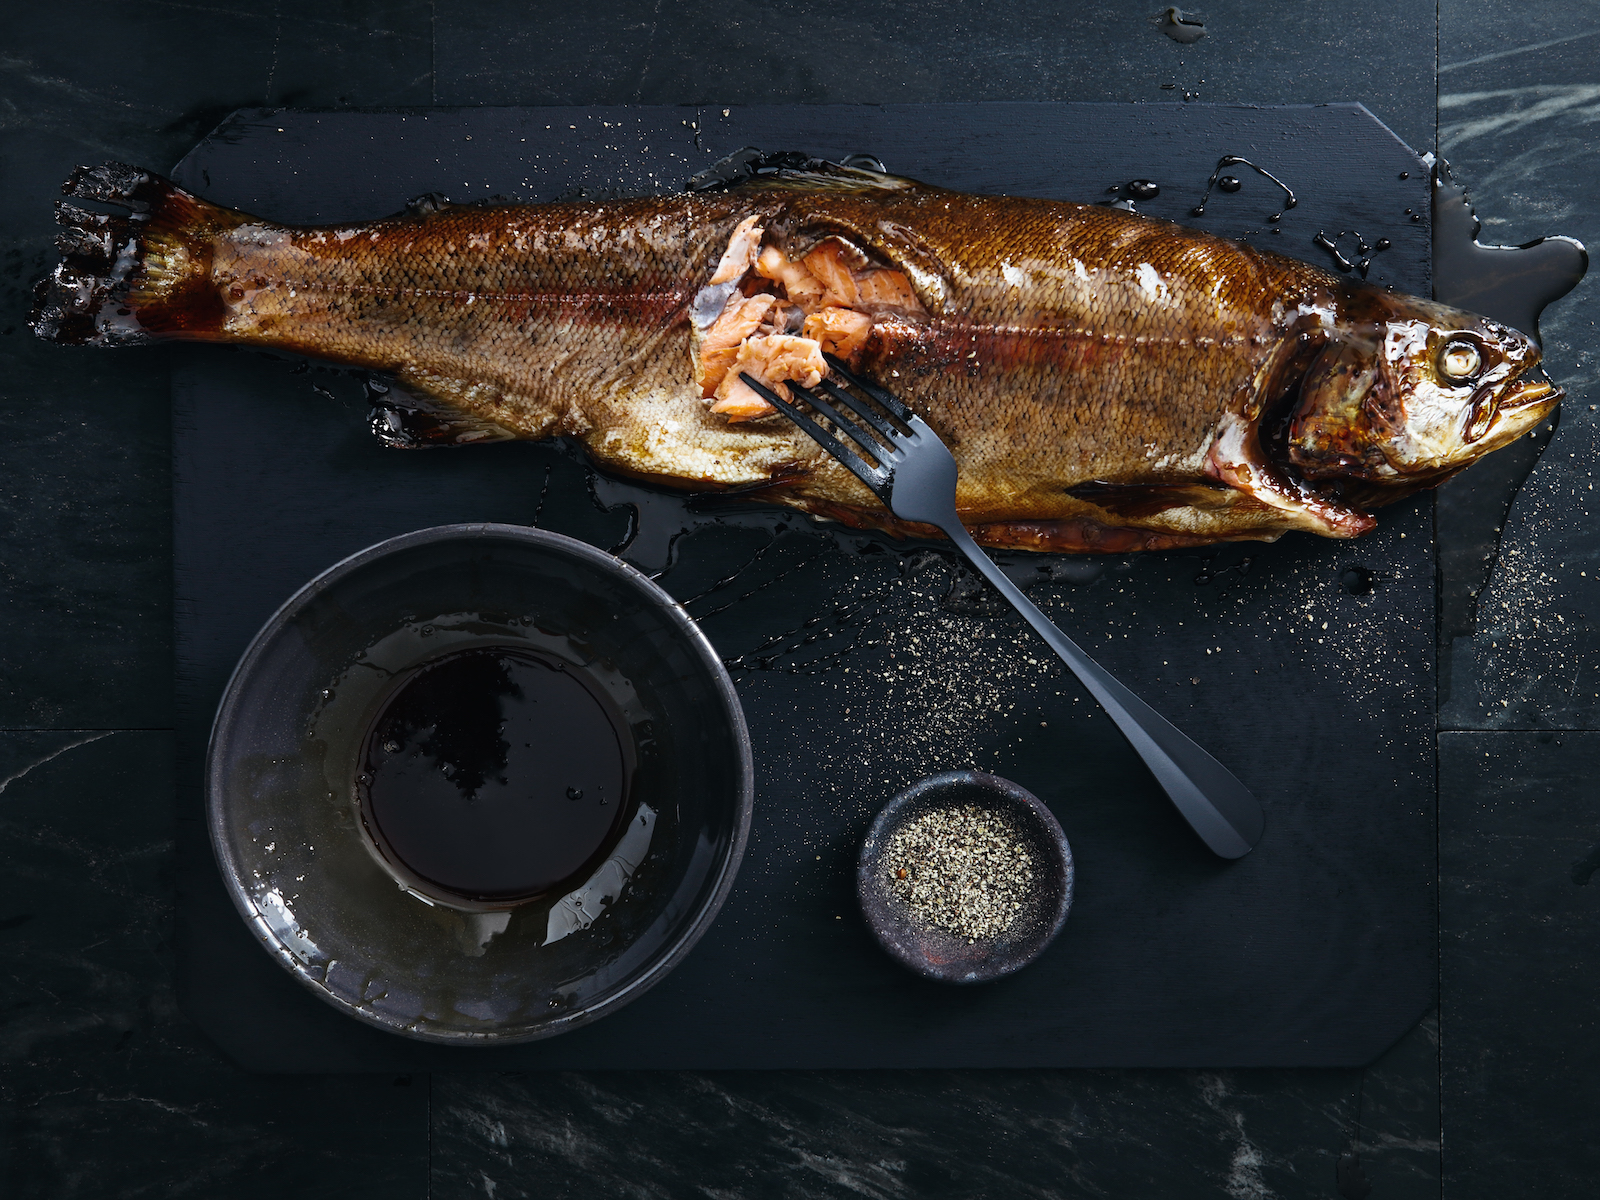 Butchering whole fish